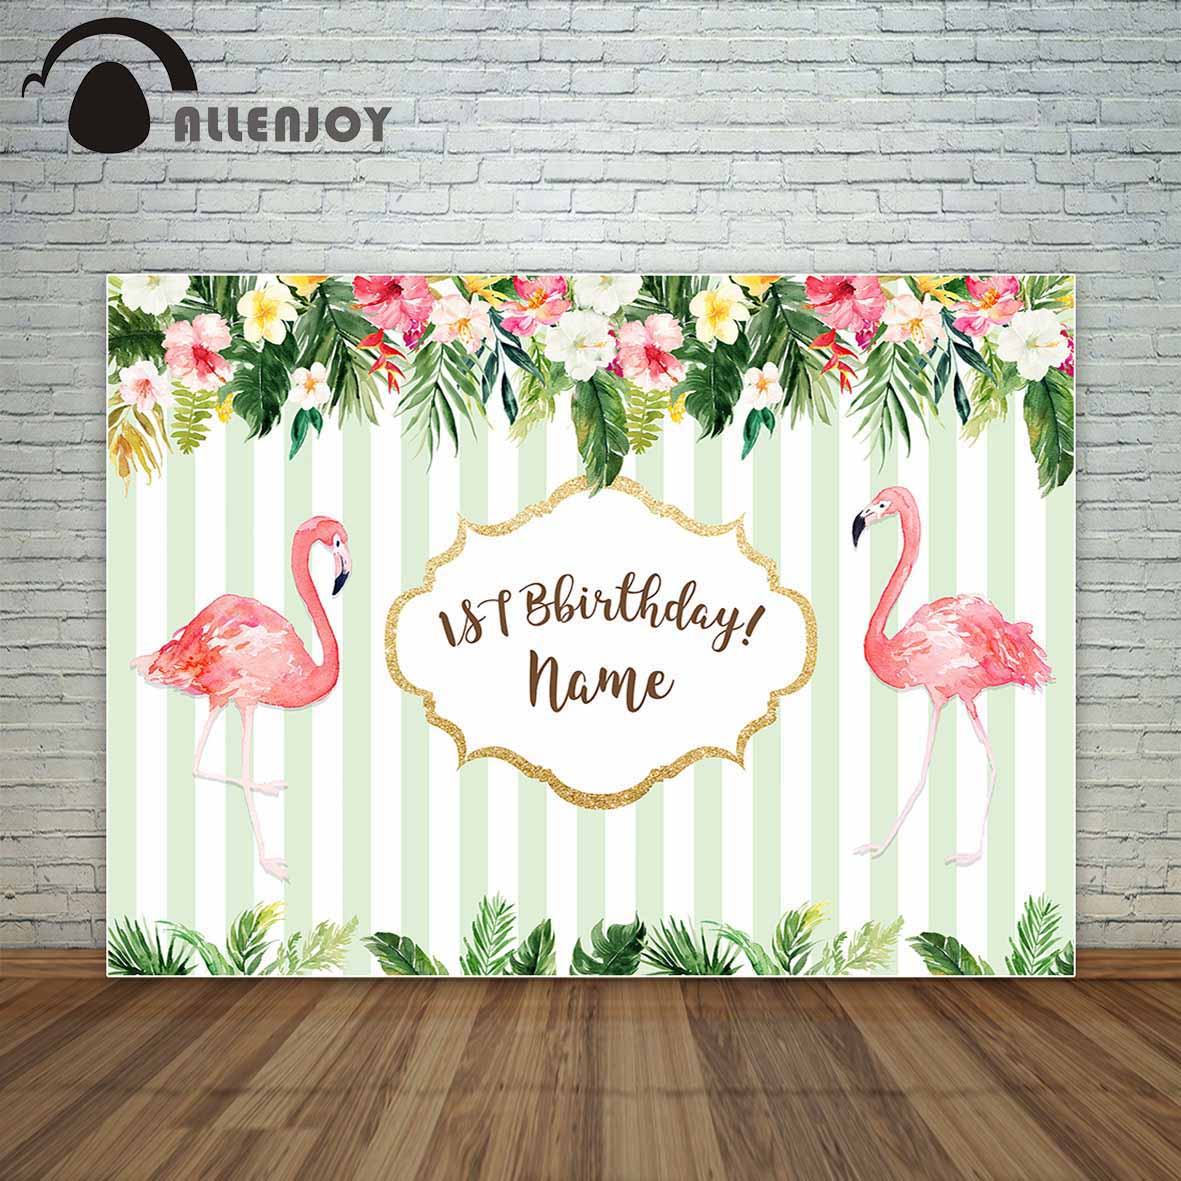 Allenjoy Birthday Custom Backdrop Flamingo Tropical Theme